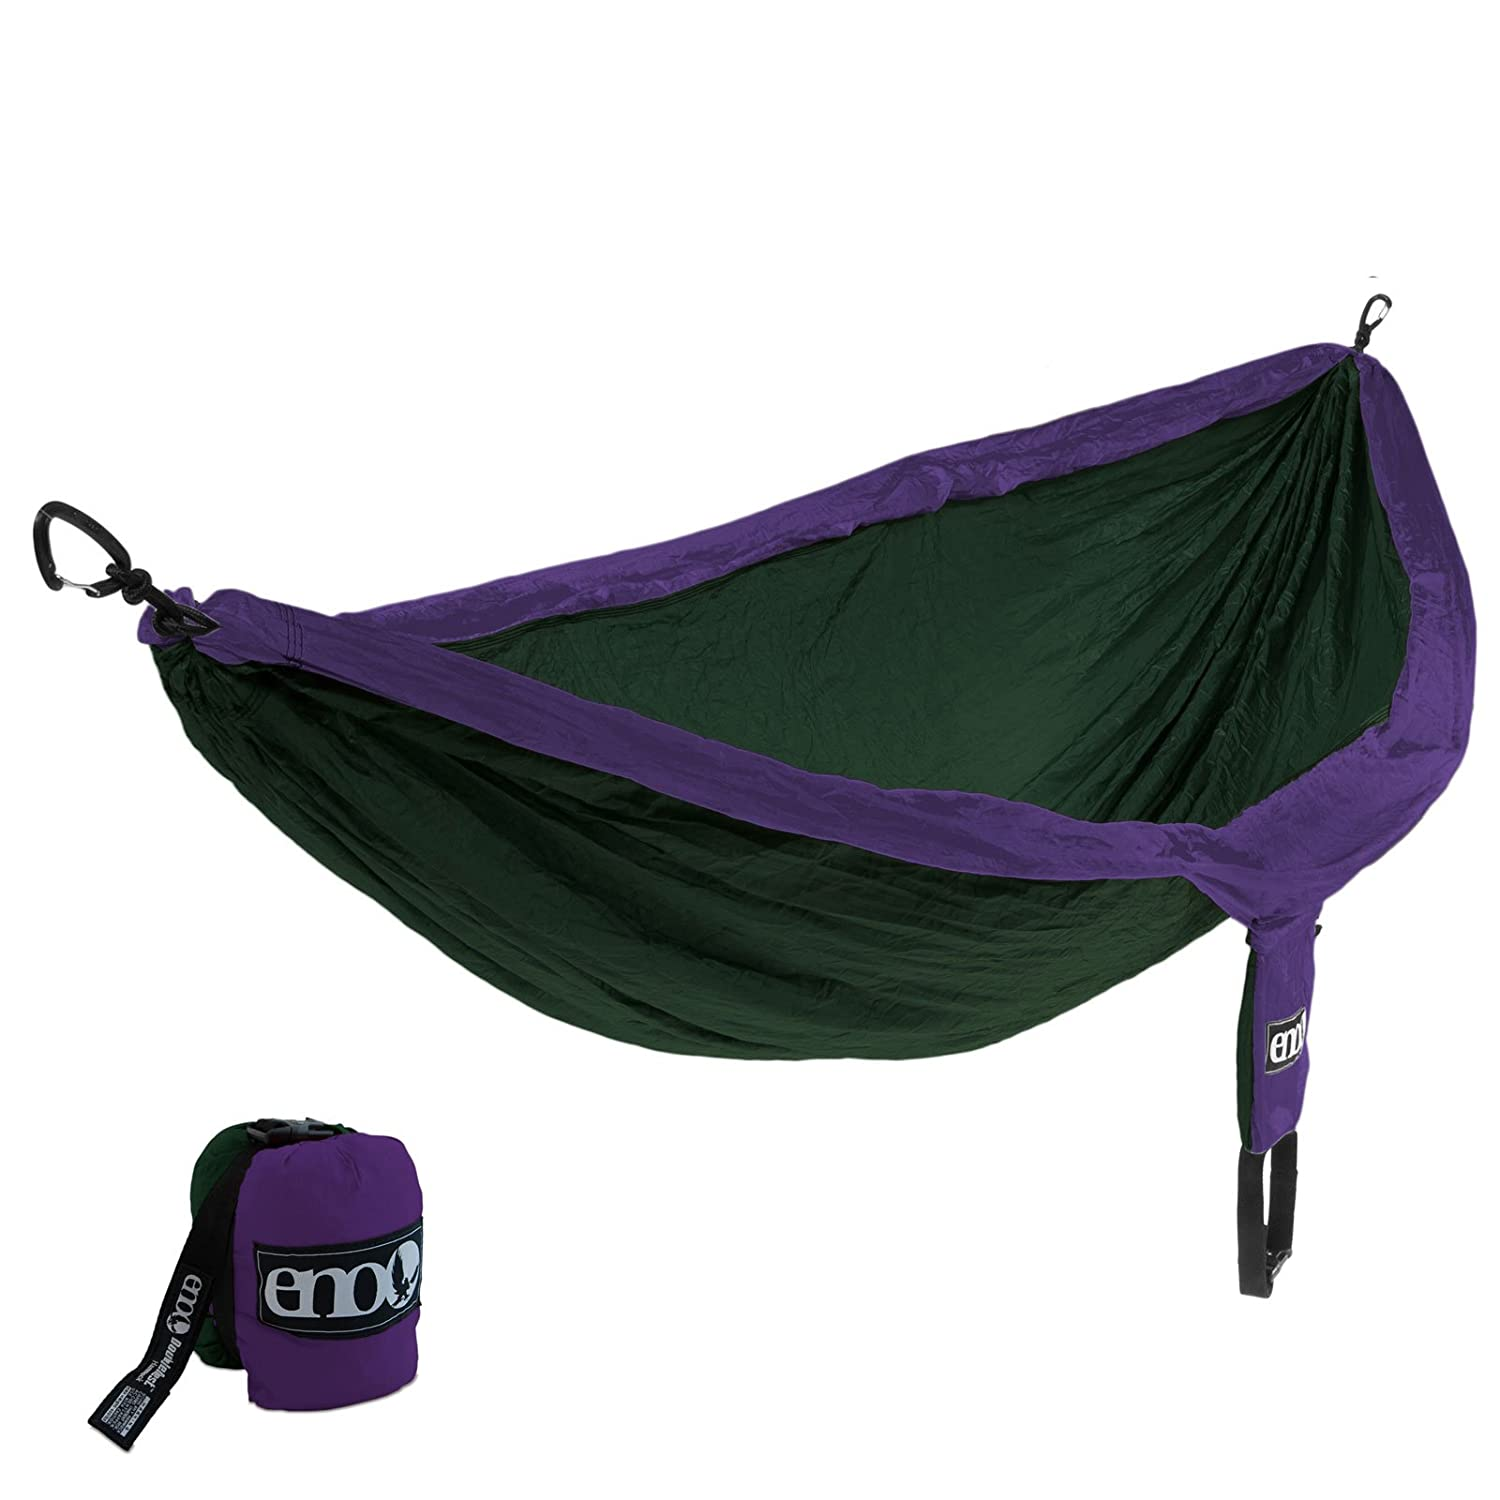 eno Eagles Nest DoubleNest OneLink Combo – Purple Forest Hammock Grey Profly